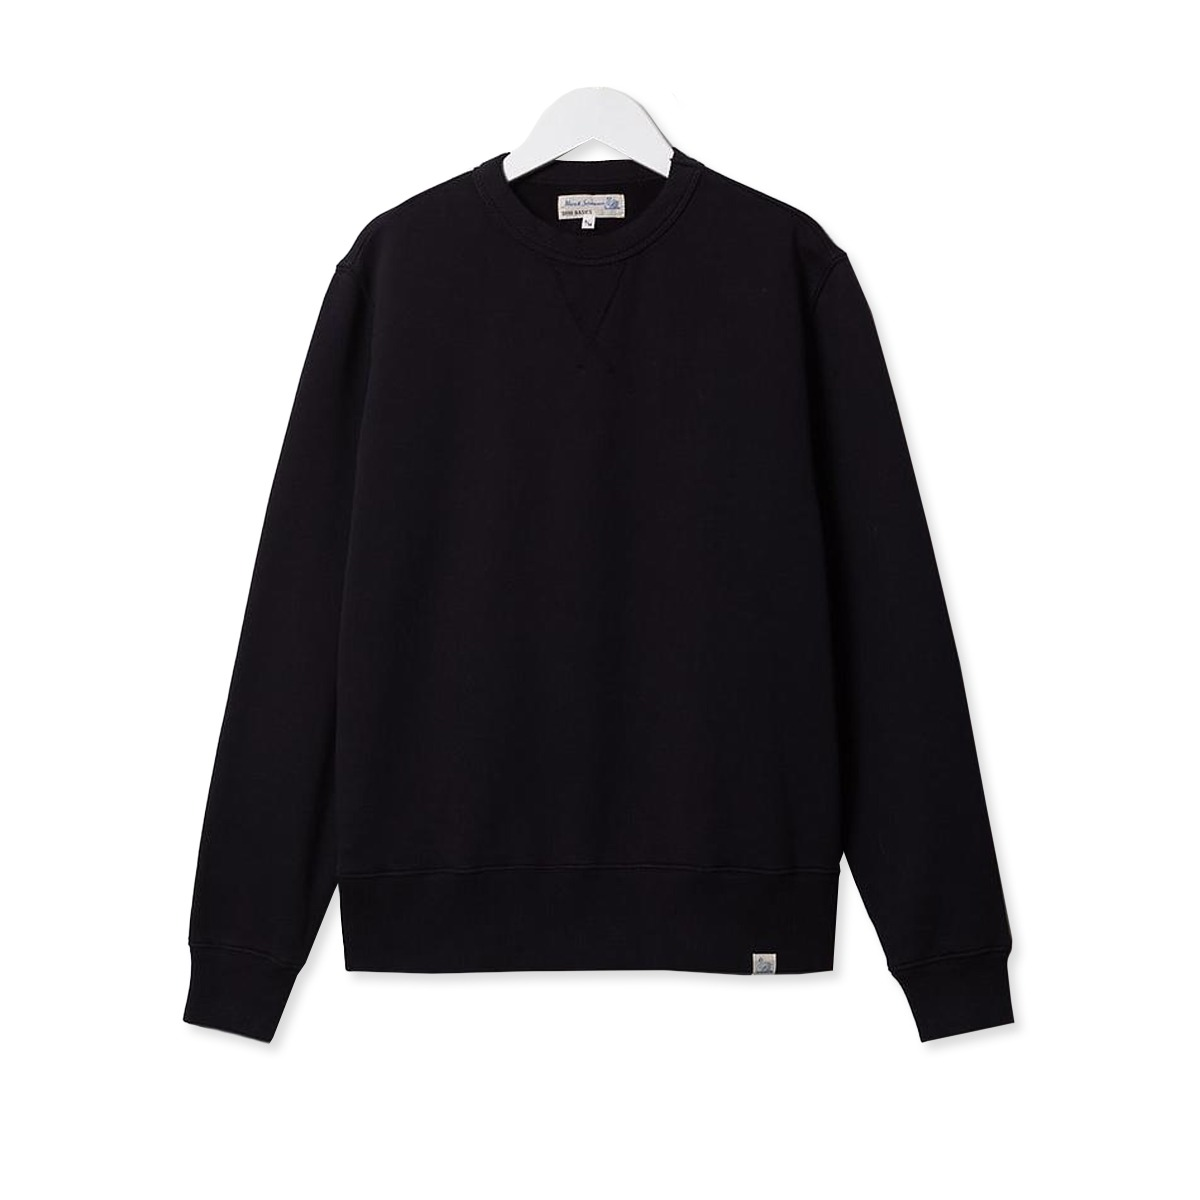 [Merz B. Schwanen] GOOD BASICS MEN'S SWEATSHIRT 'CHARCOAL'